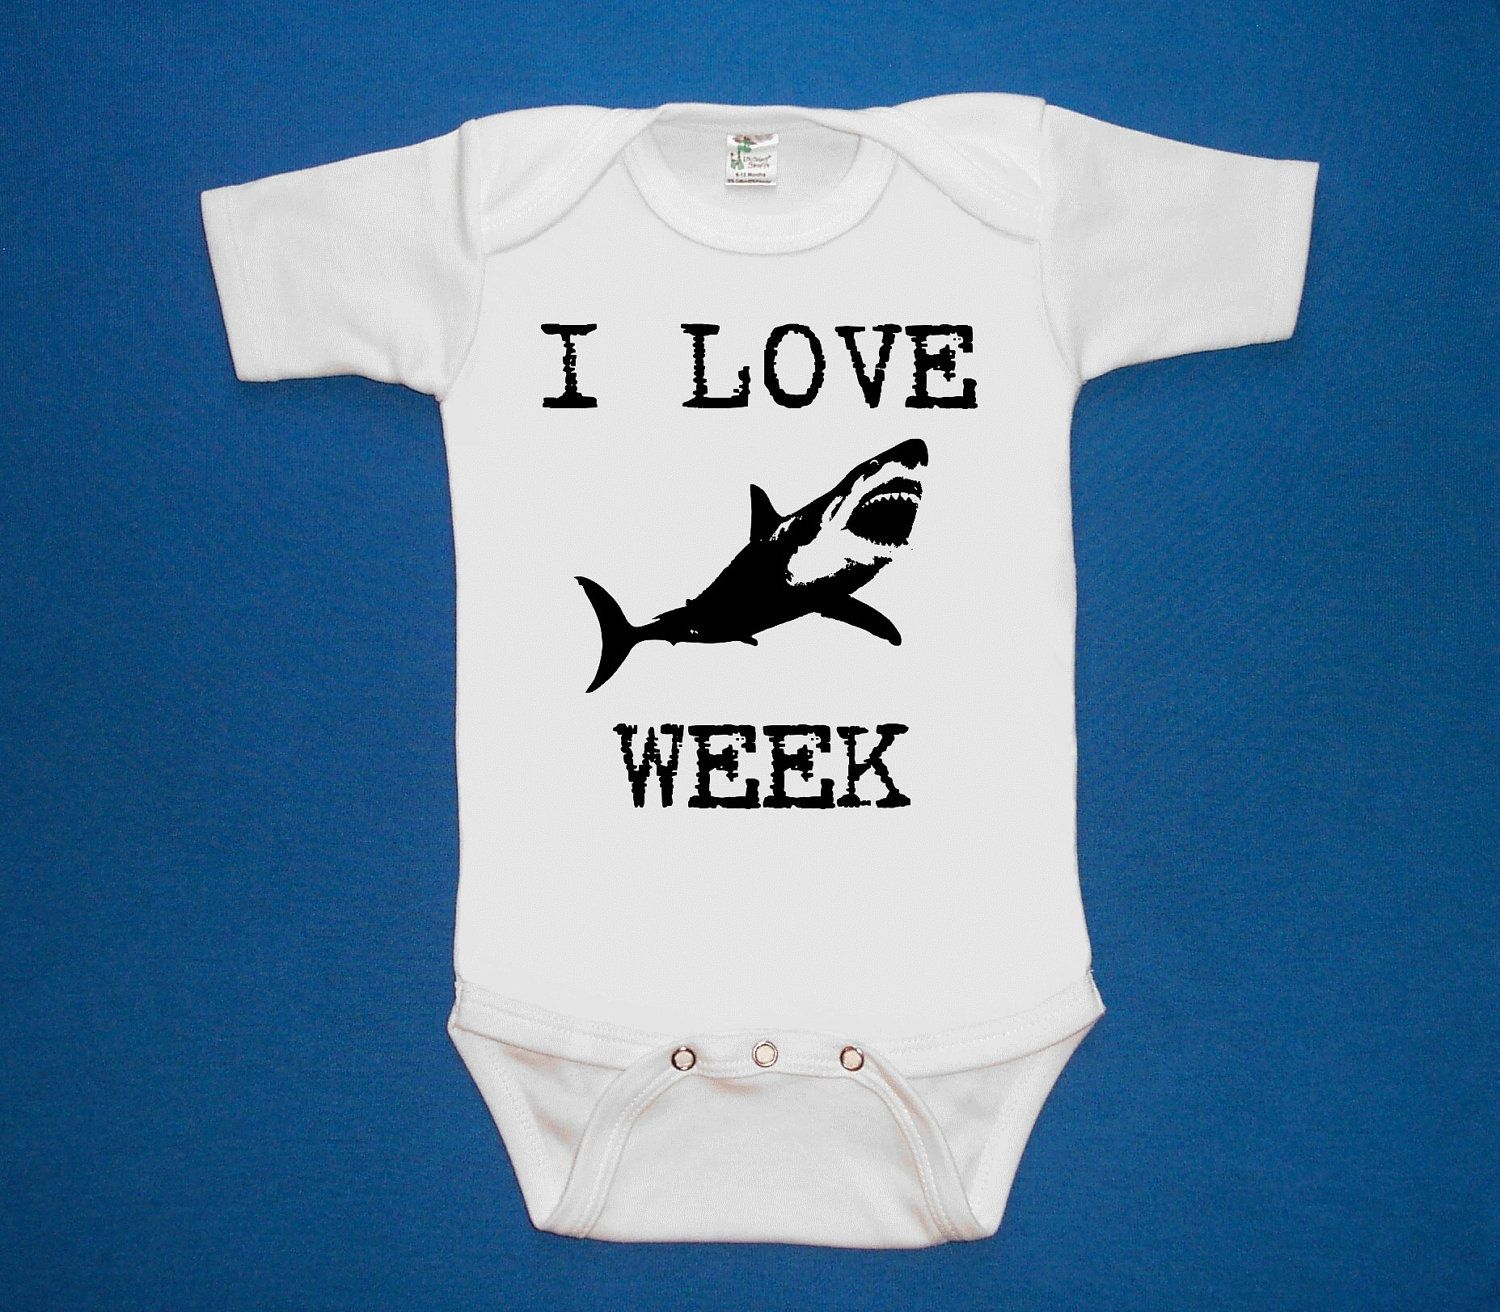 I Love Shark Week Baby One Piece Creeper Bodysuit Kids Everything